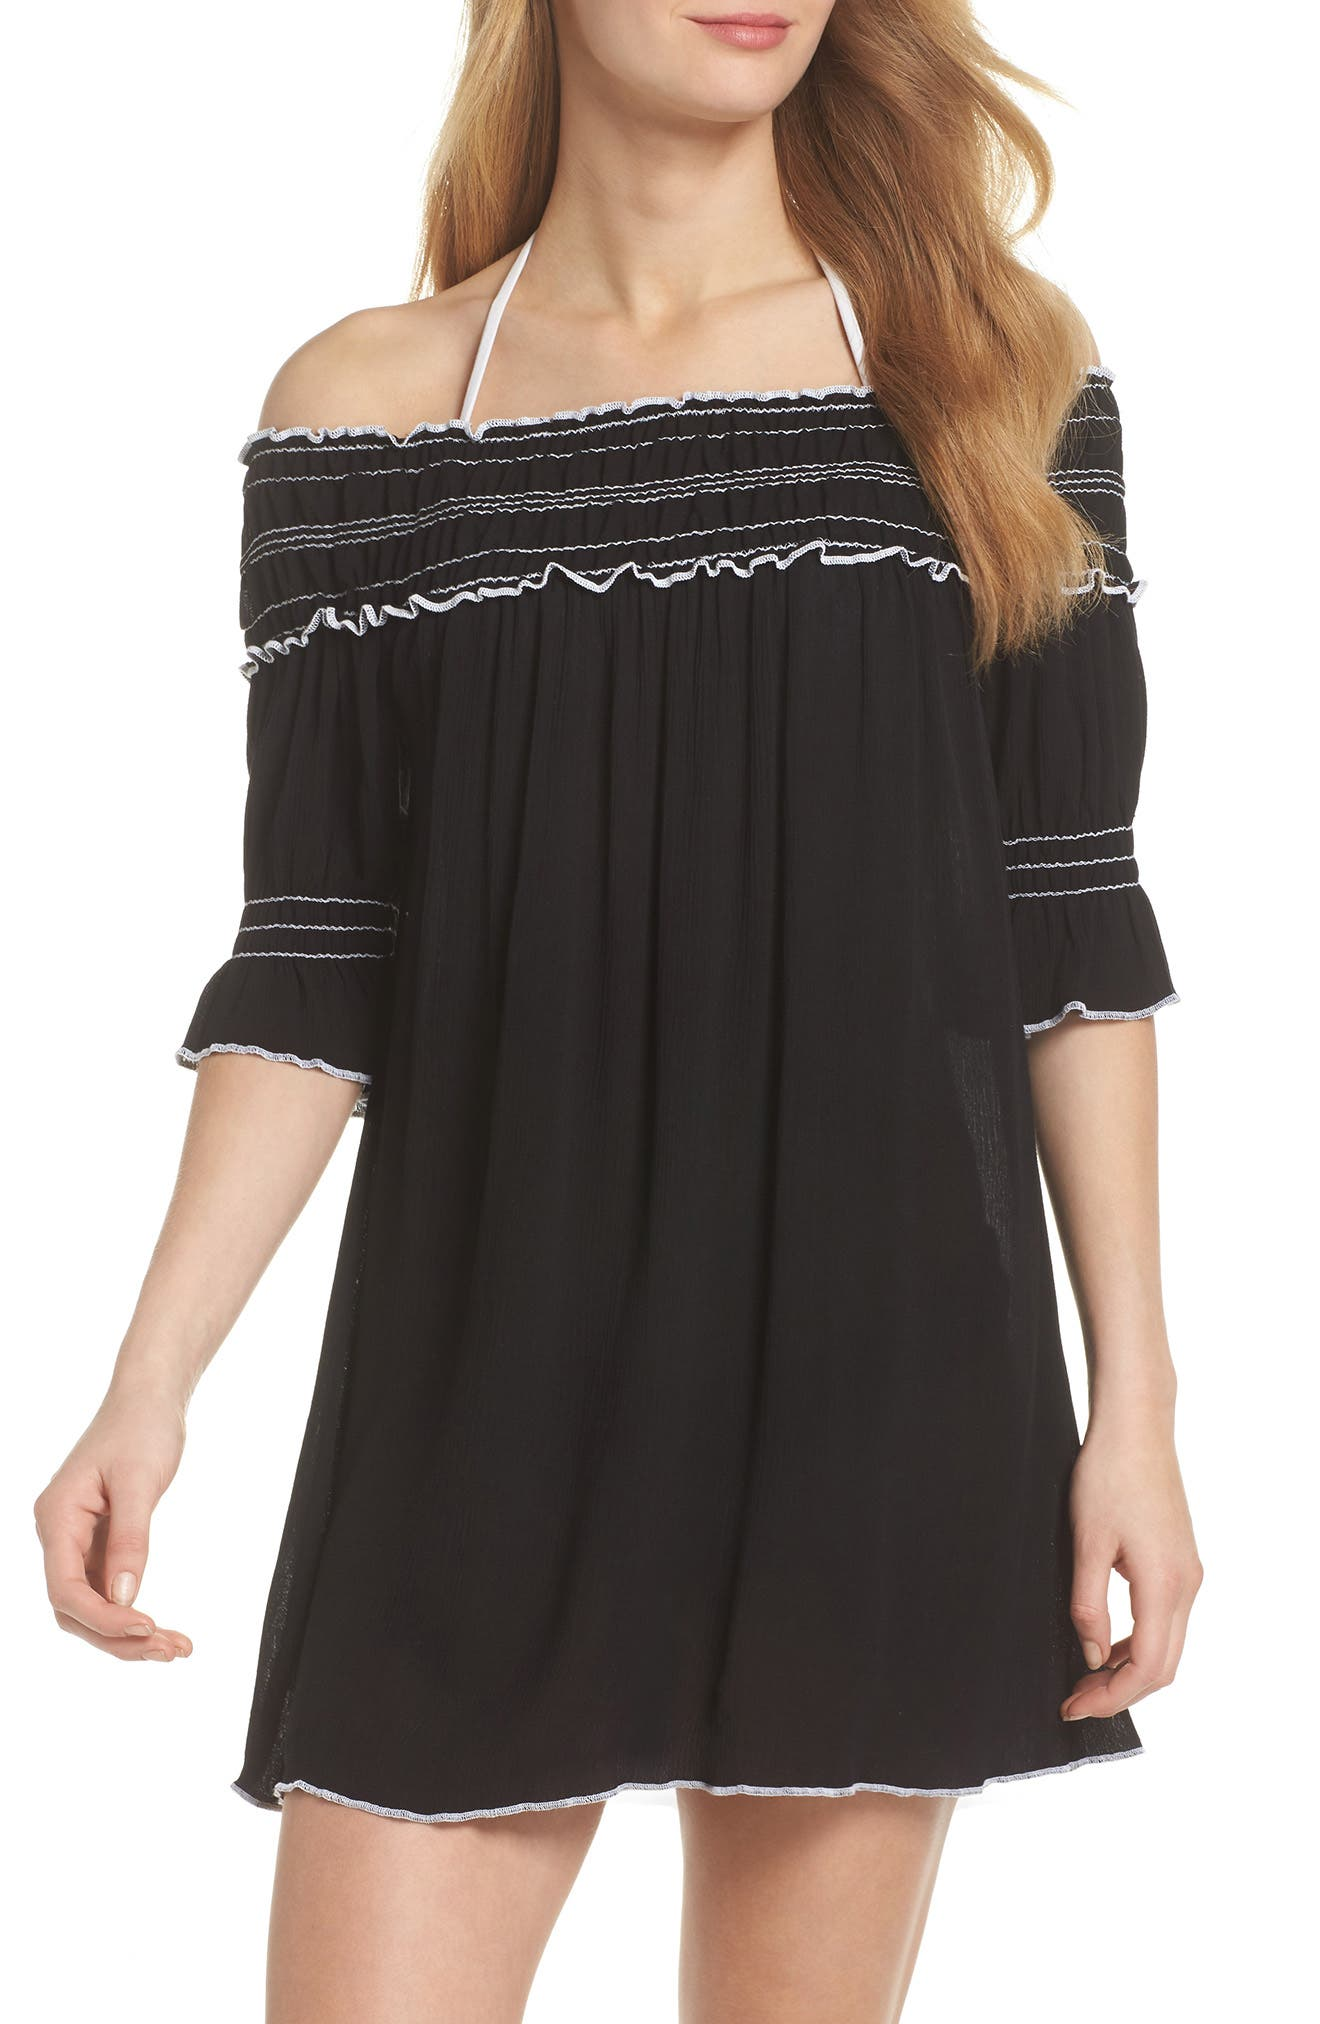 Nightingale Off the Shoulder Cover-Up Dress,                             Main thumbnail 1, color,                             001